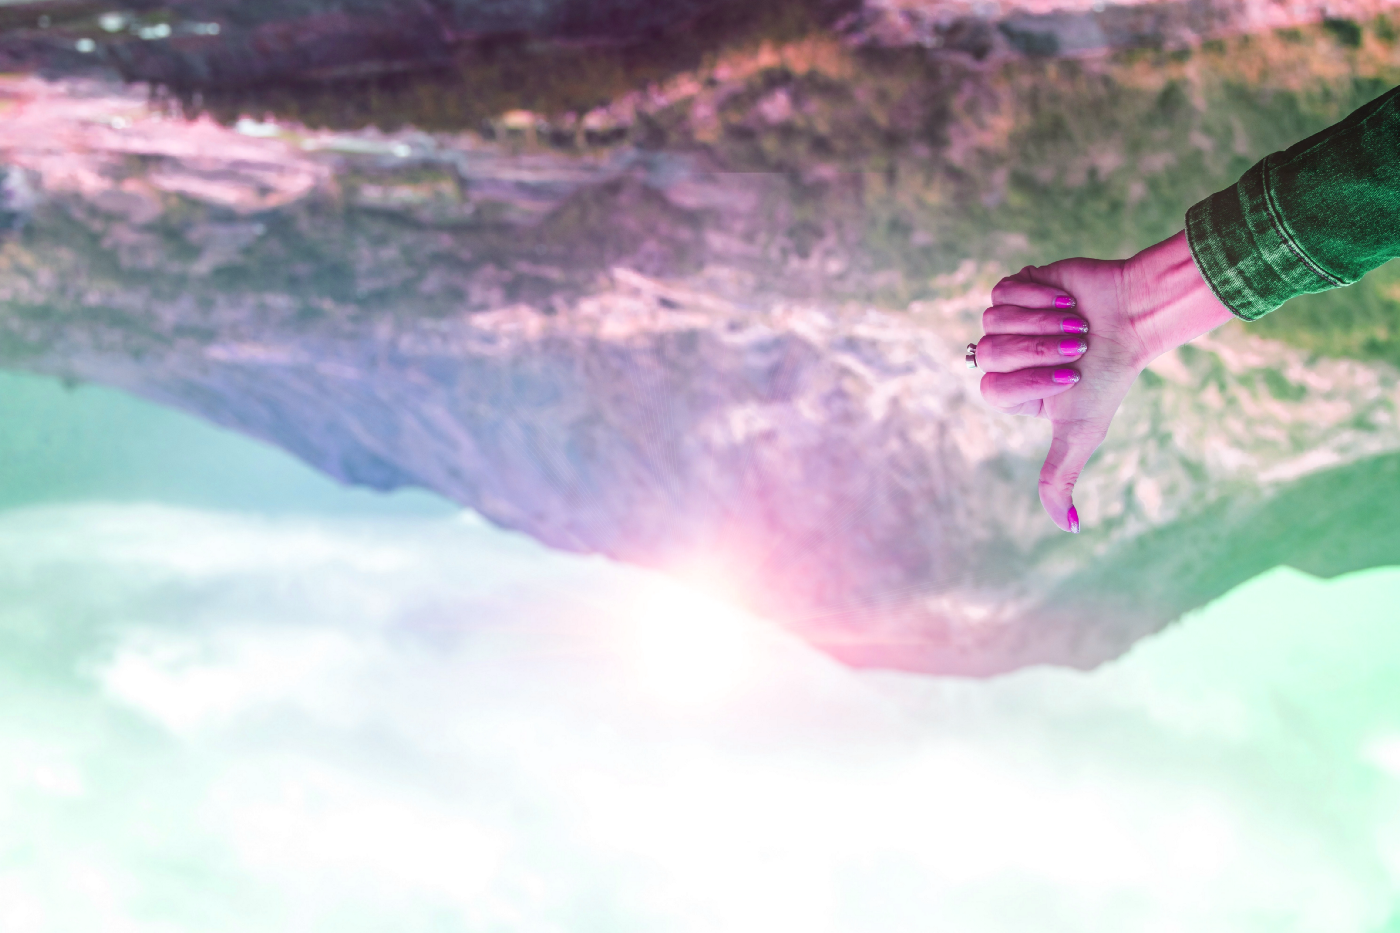 An upside-down image of a person holding their thumb up with mountains in the background.